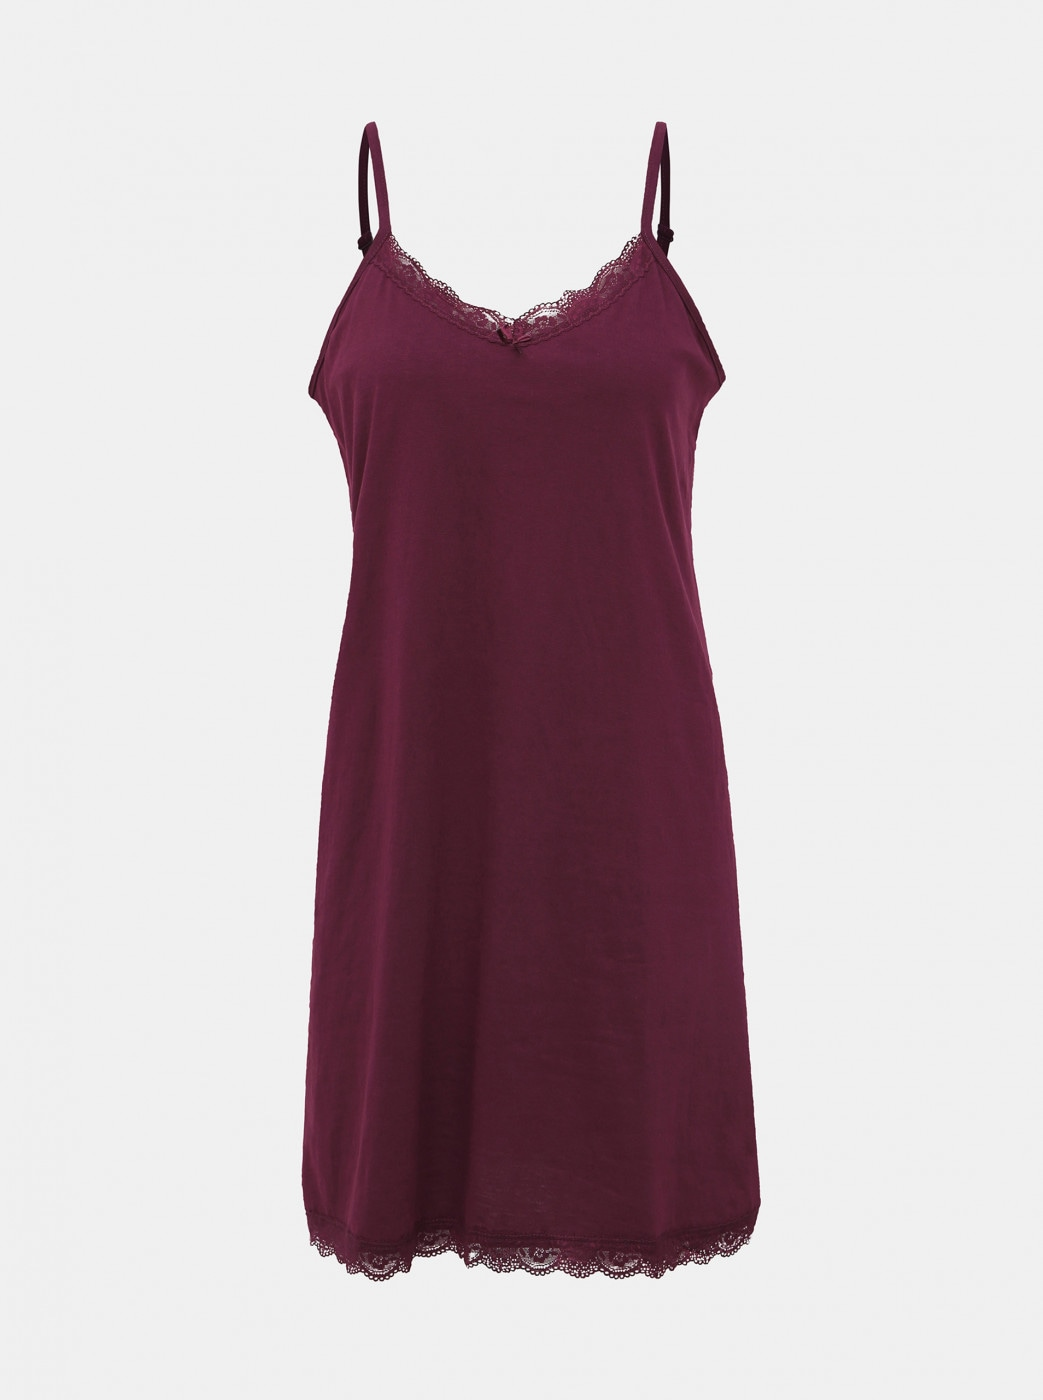 Dorothy Perkins Purple Nightgown